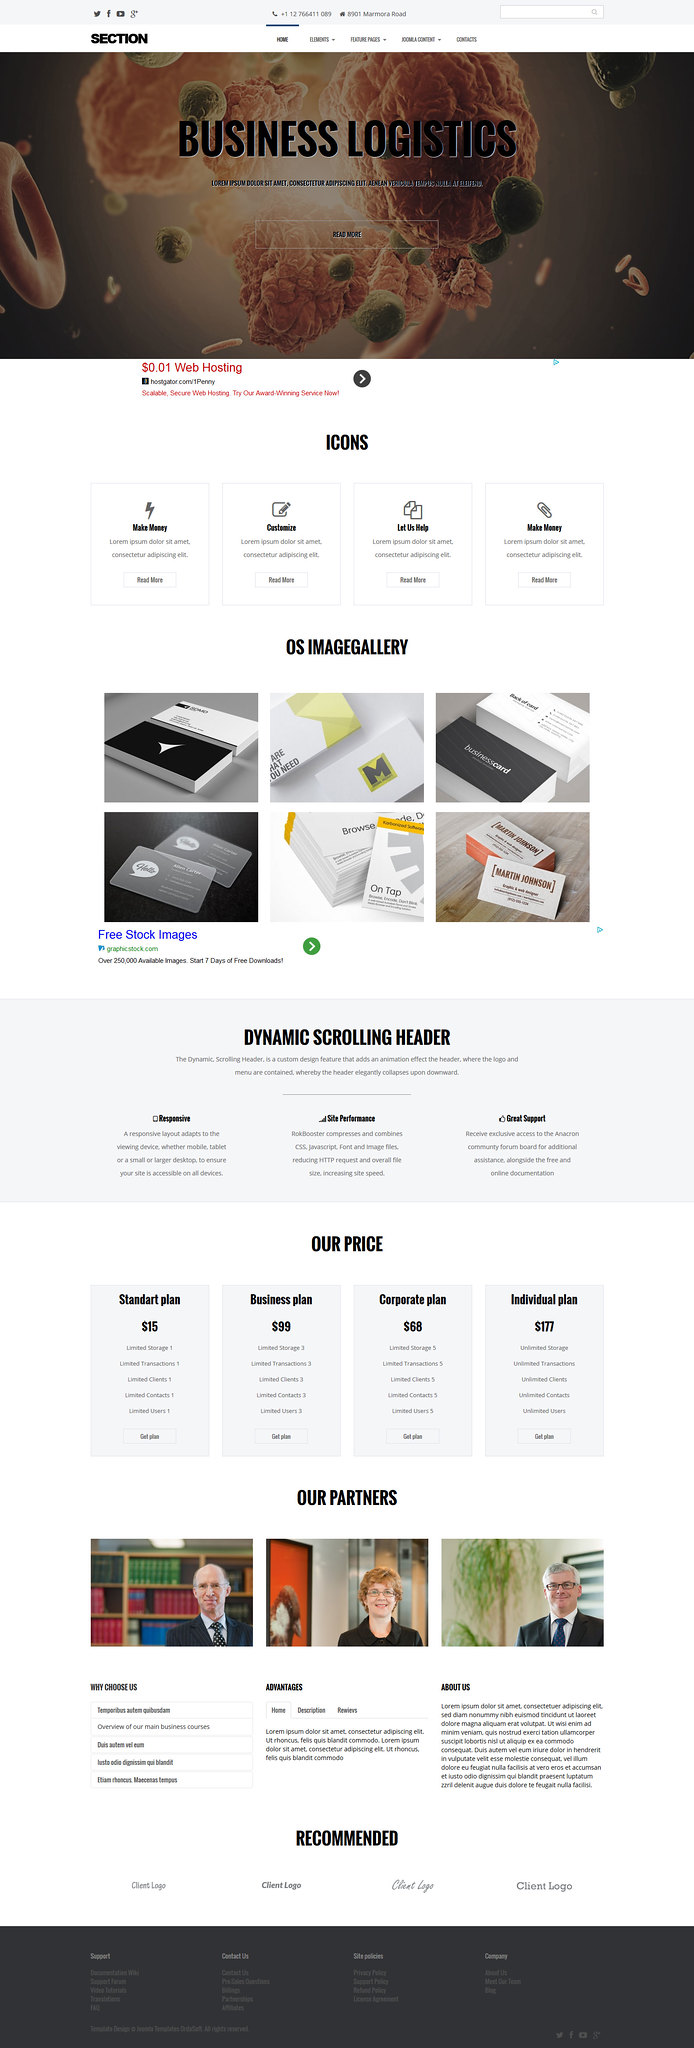 Section Joomla 3.x Free Template